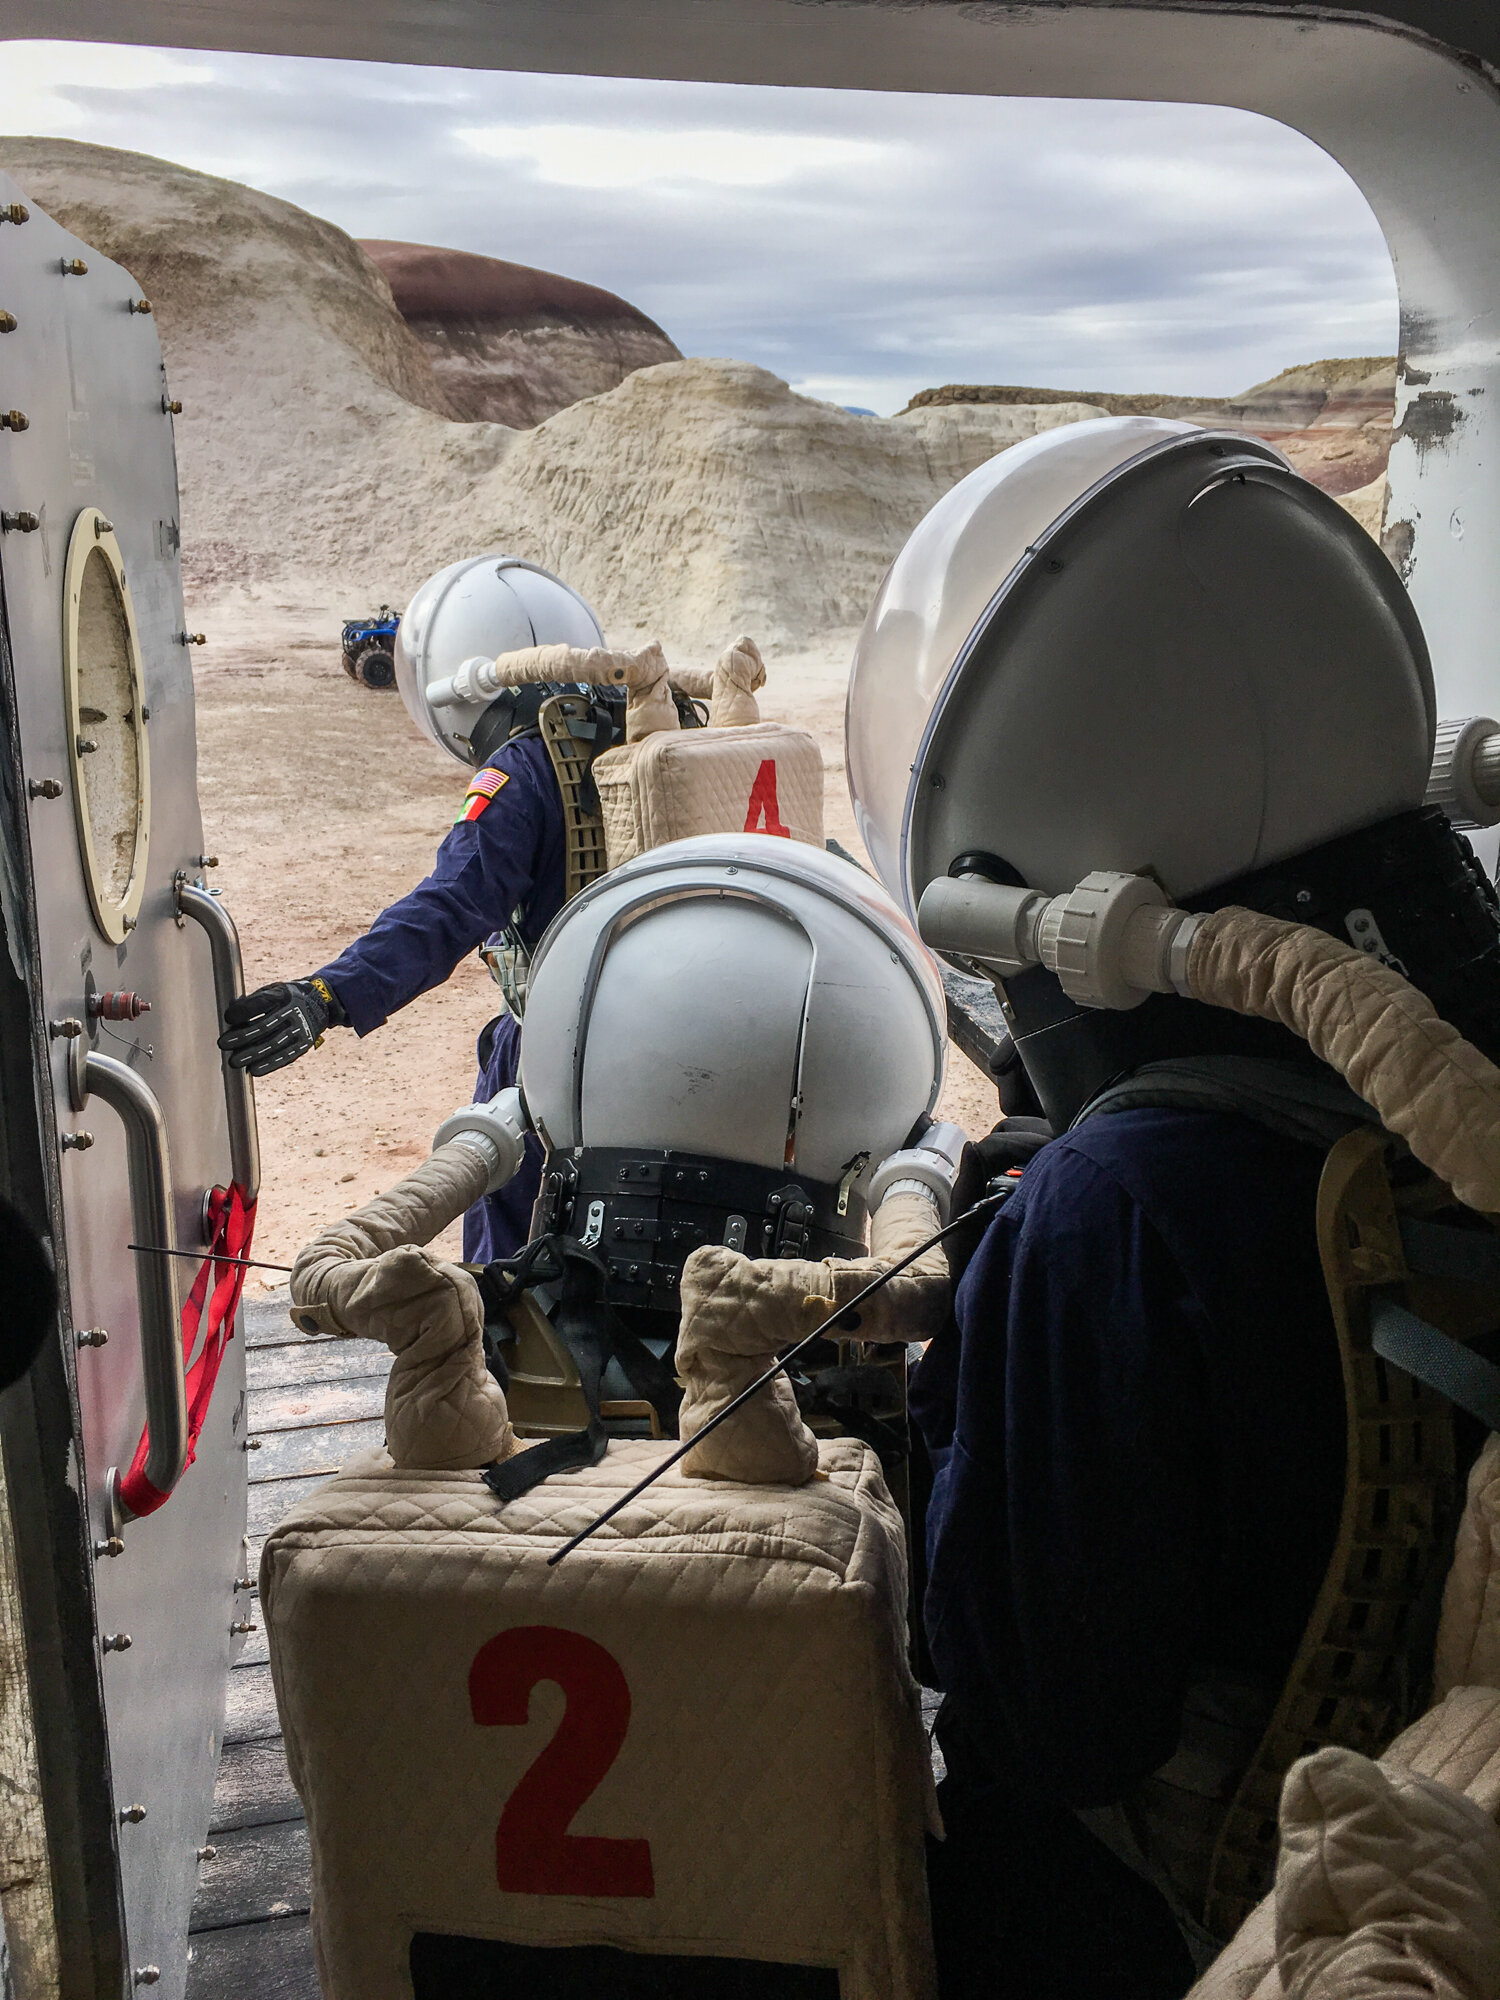 Crew members count to 60 before exiting the capsule, to simulate the depressurization time required if they were really on Mars.     (Rae Ellen Bichell/NPR)